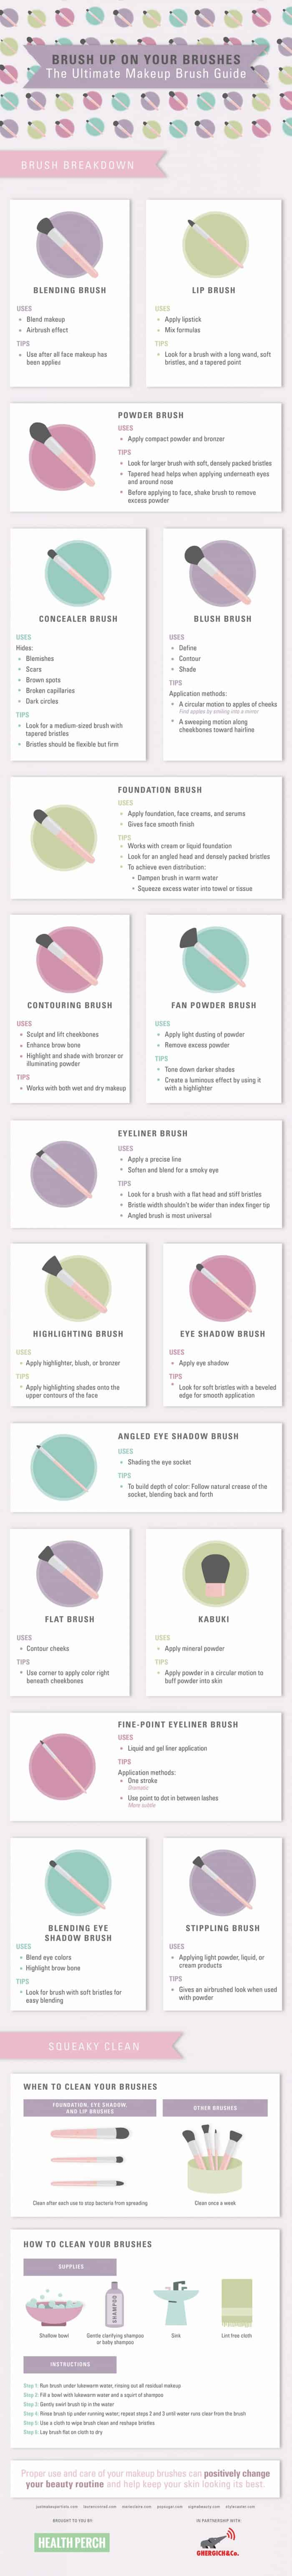 Ultimate Makeup Brushes Guide infographic